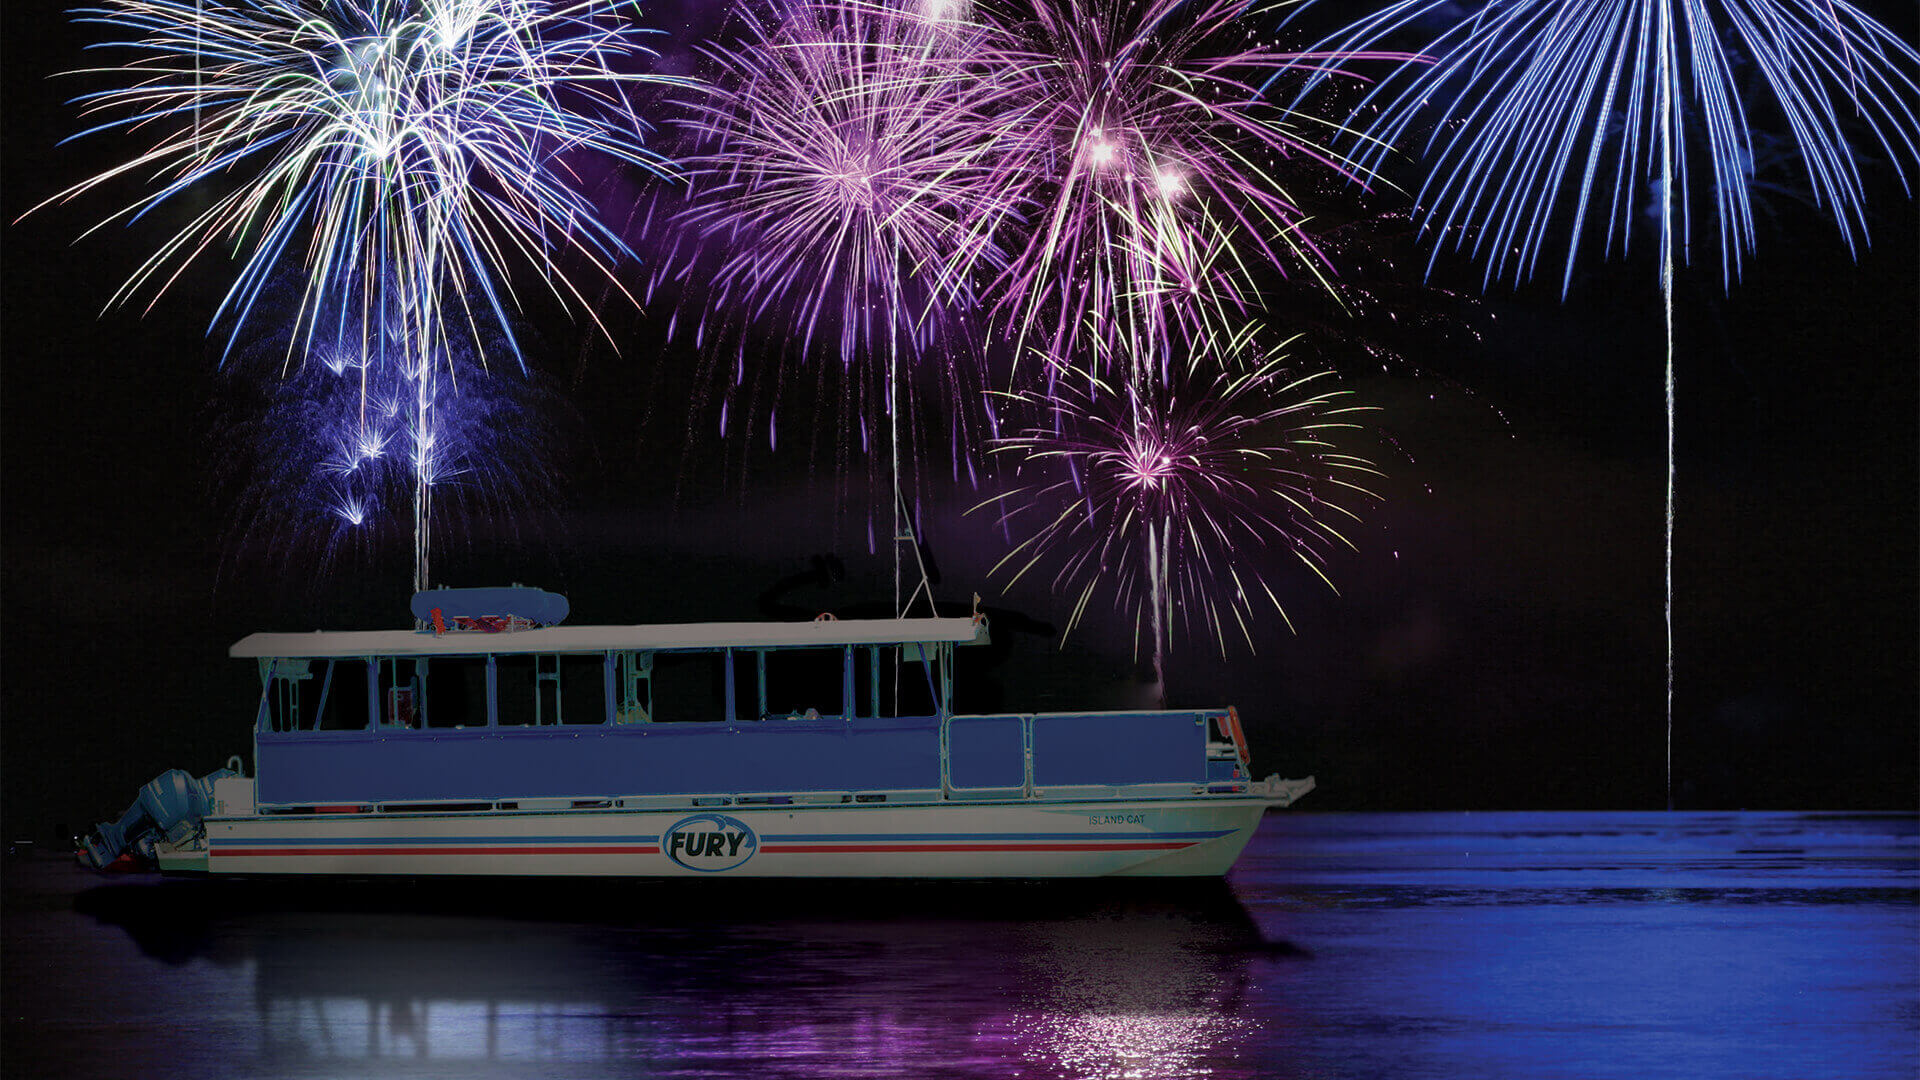 Fireworks over a boat